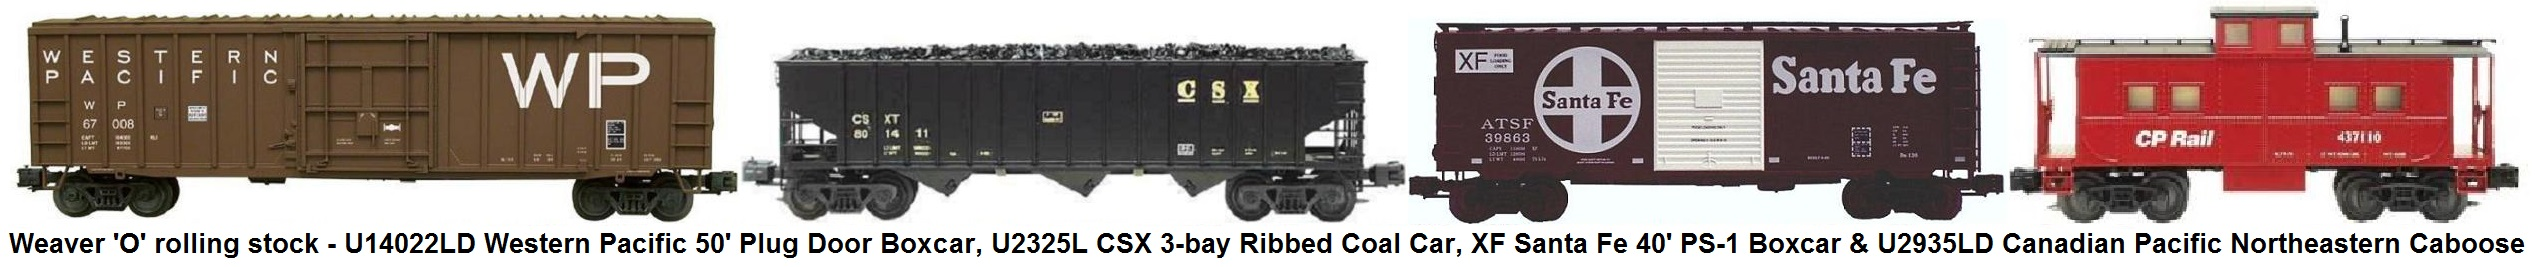 Weaver 'O' gauge rolling stock - Western Pacific U14022LD 50' Plug Door Boxcar, CSX U2325L 3-Bay Ribbed Coal Car, XF SANTA FE 40' PS-1 SD Boxcar and U2935LD CP Northeastern Caboose